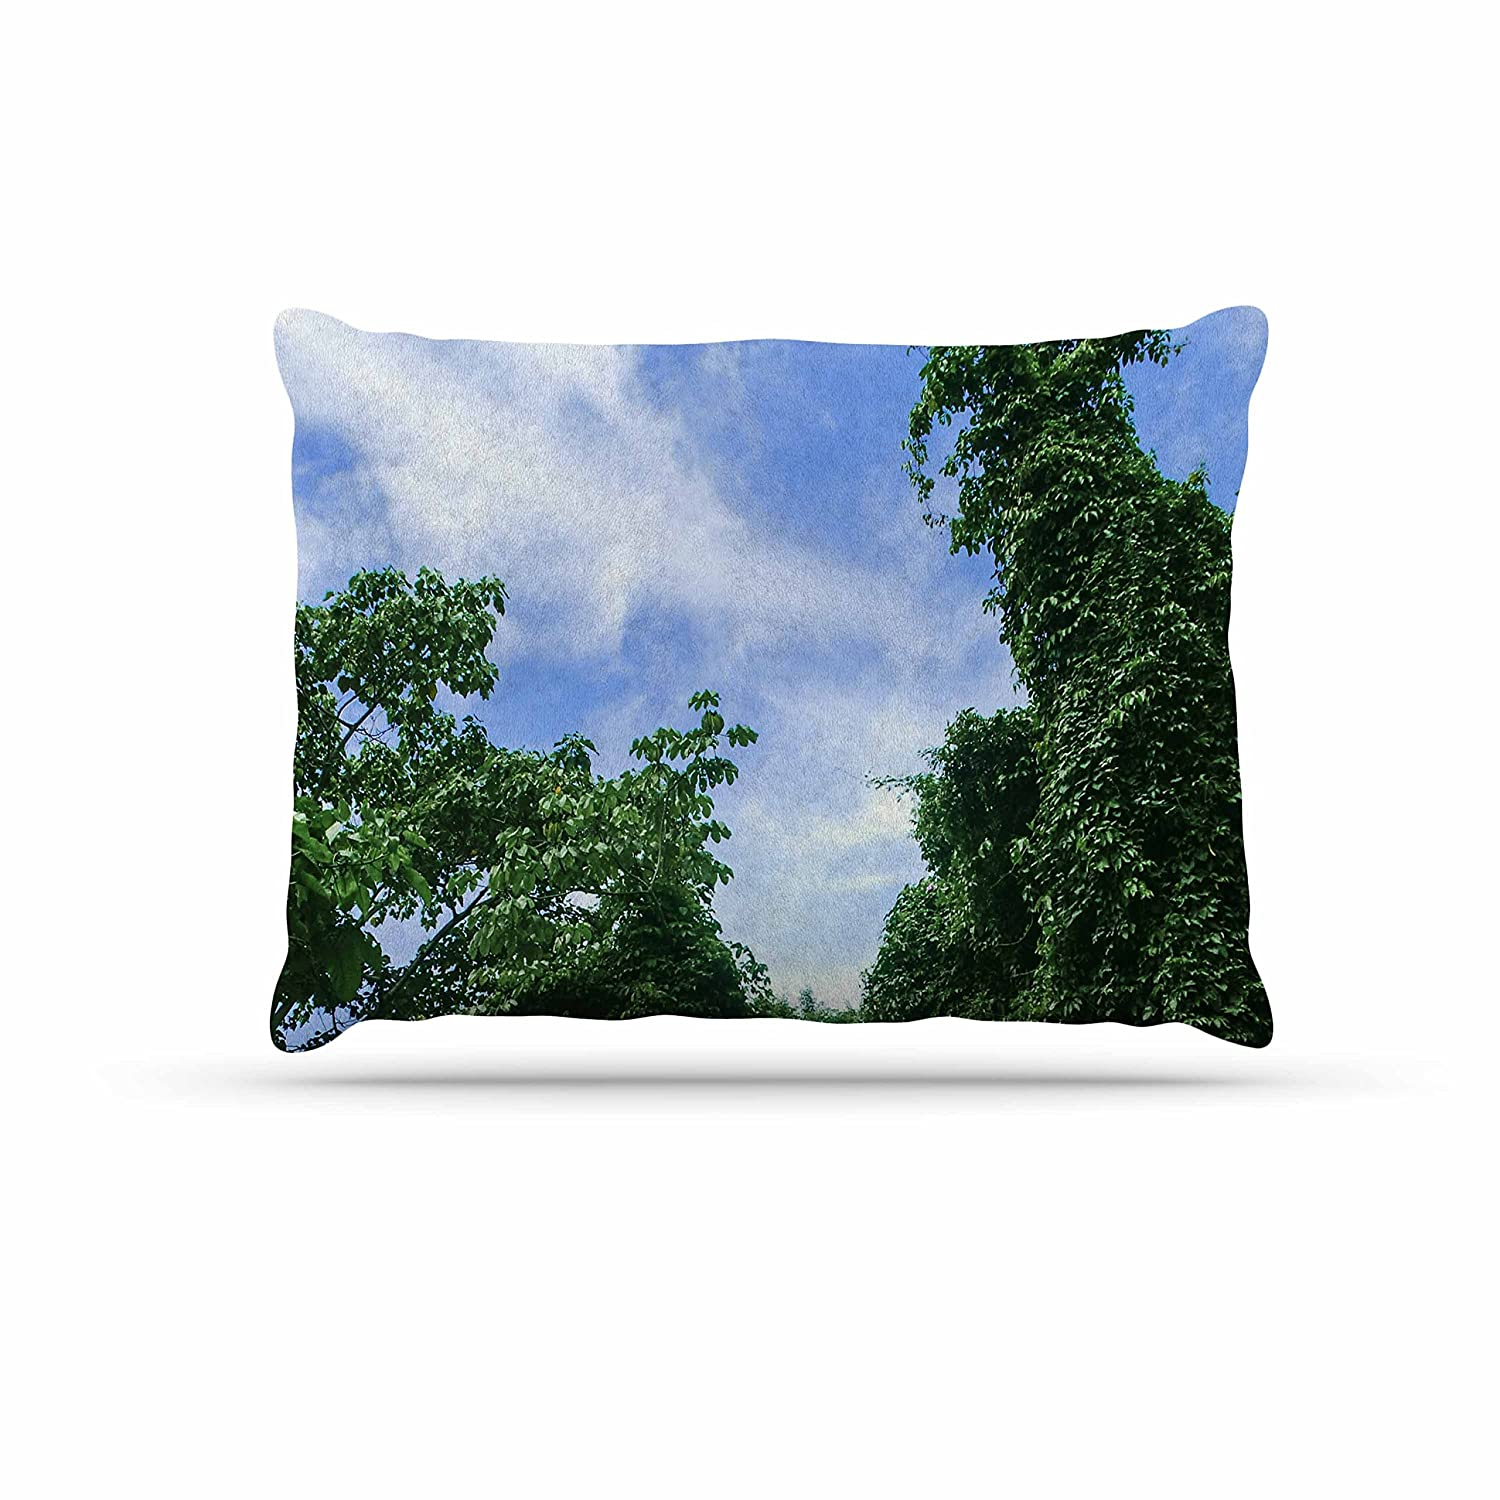 KESS InHouse Nick Nareshni Forest to The Ocean Green bluee Photography Dog Bed, 50  x 40